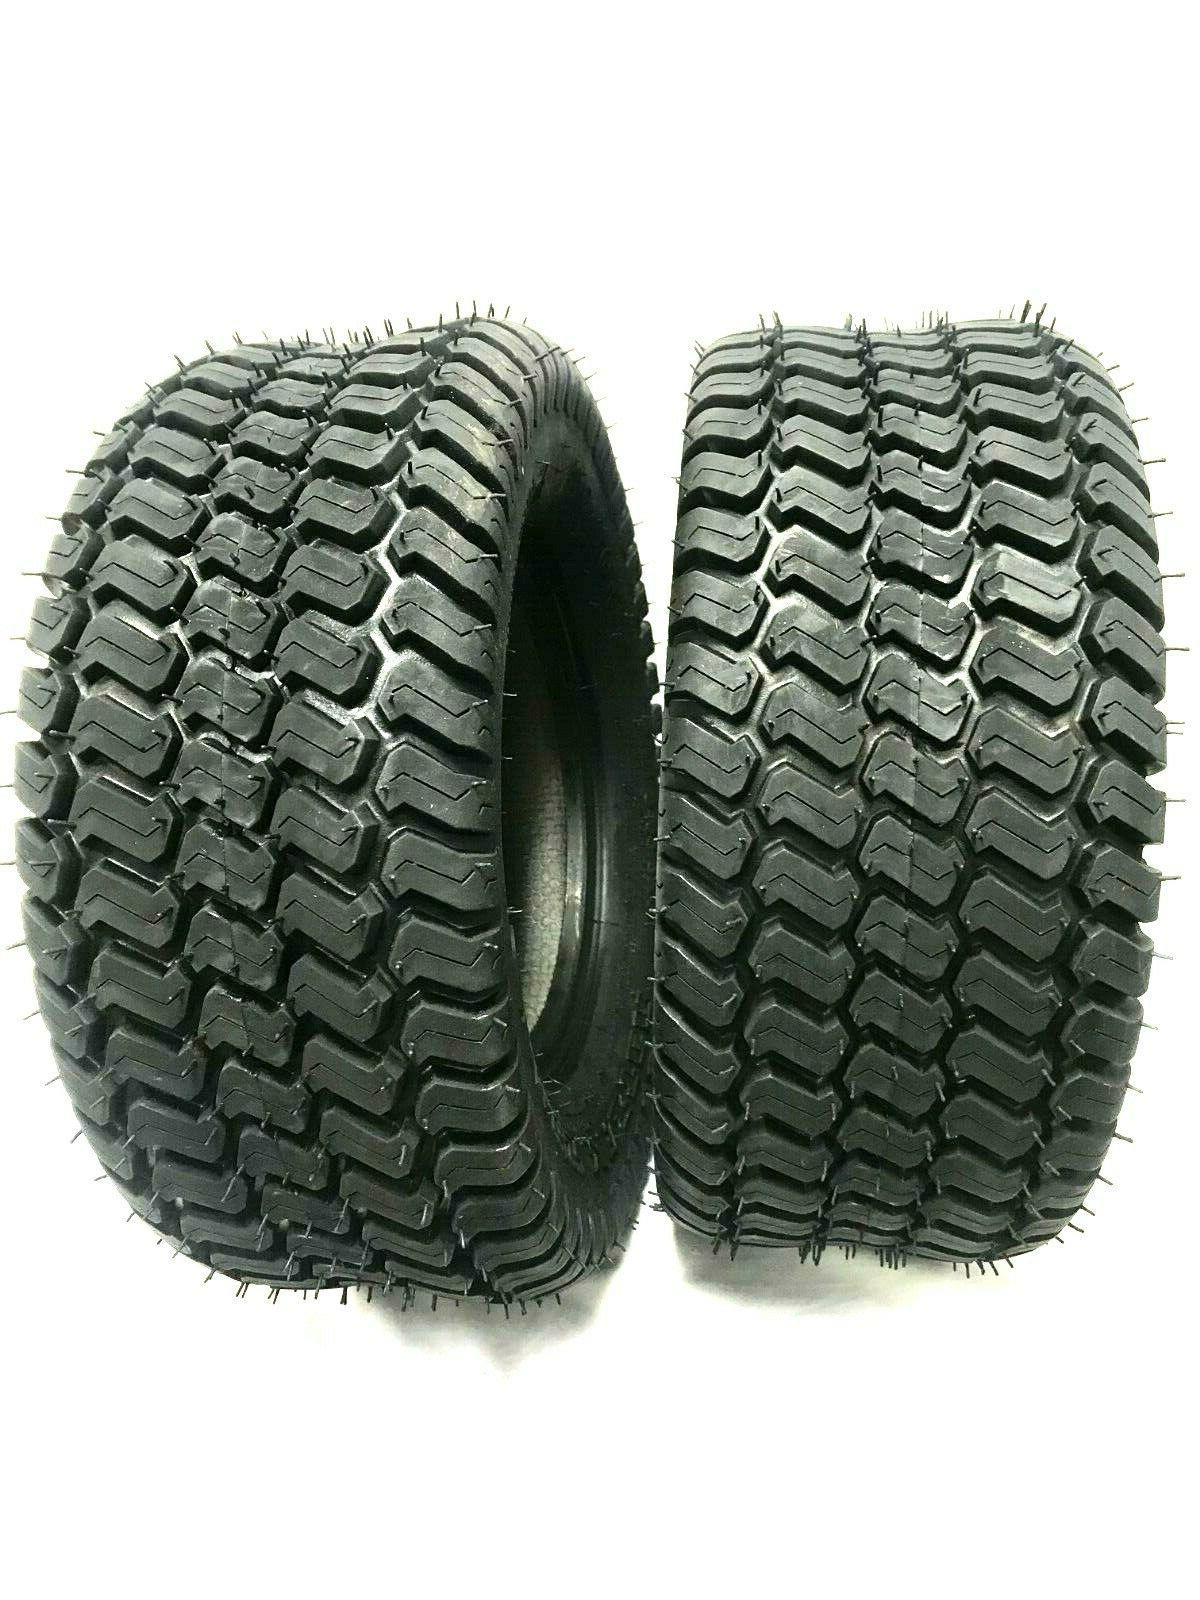 set two 16x7 50 8 lawn tractor